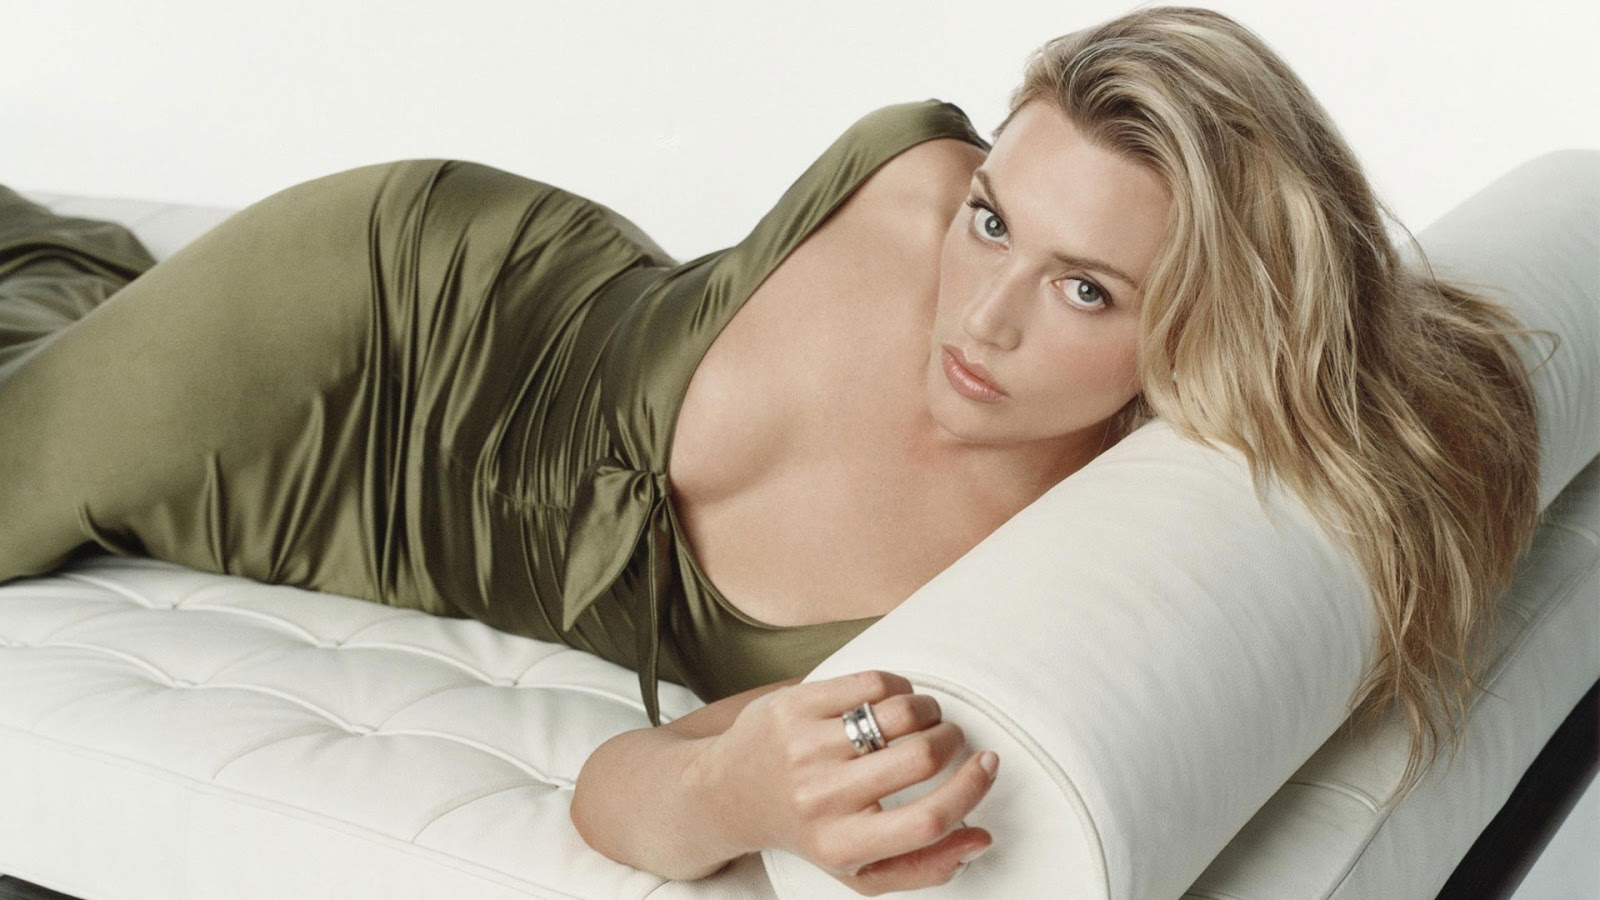 Kate Winslet nude - Celeb Nudes Photos